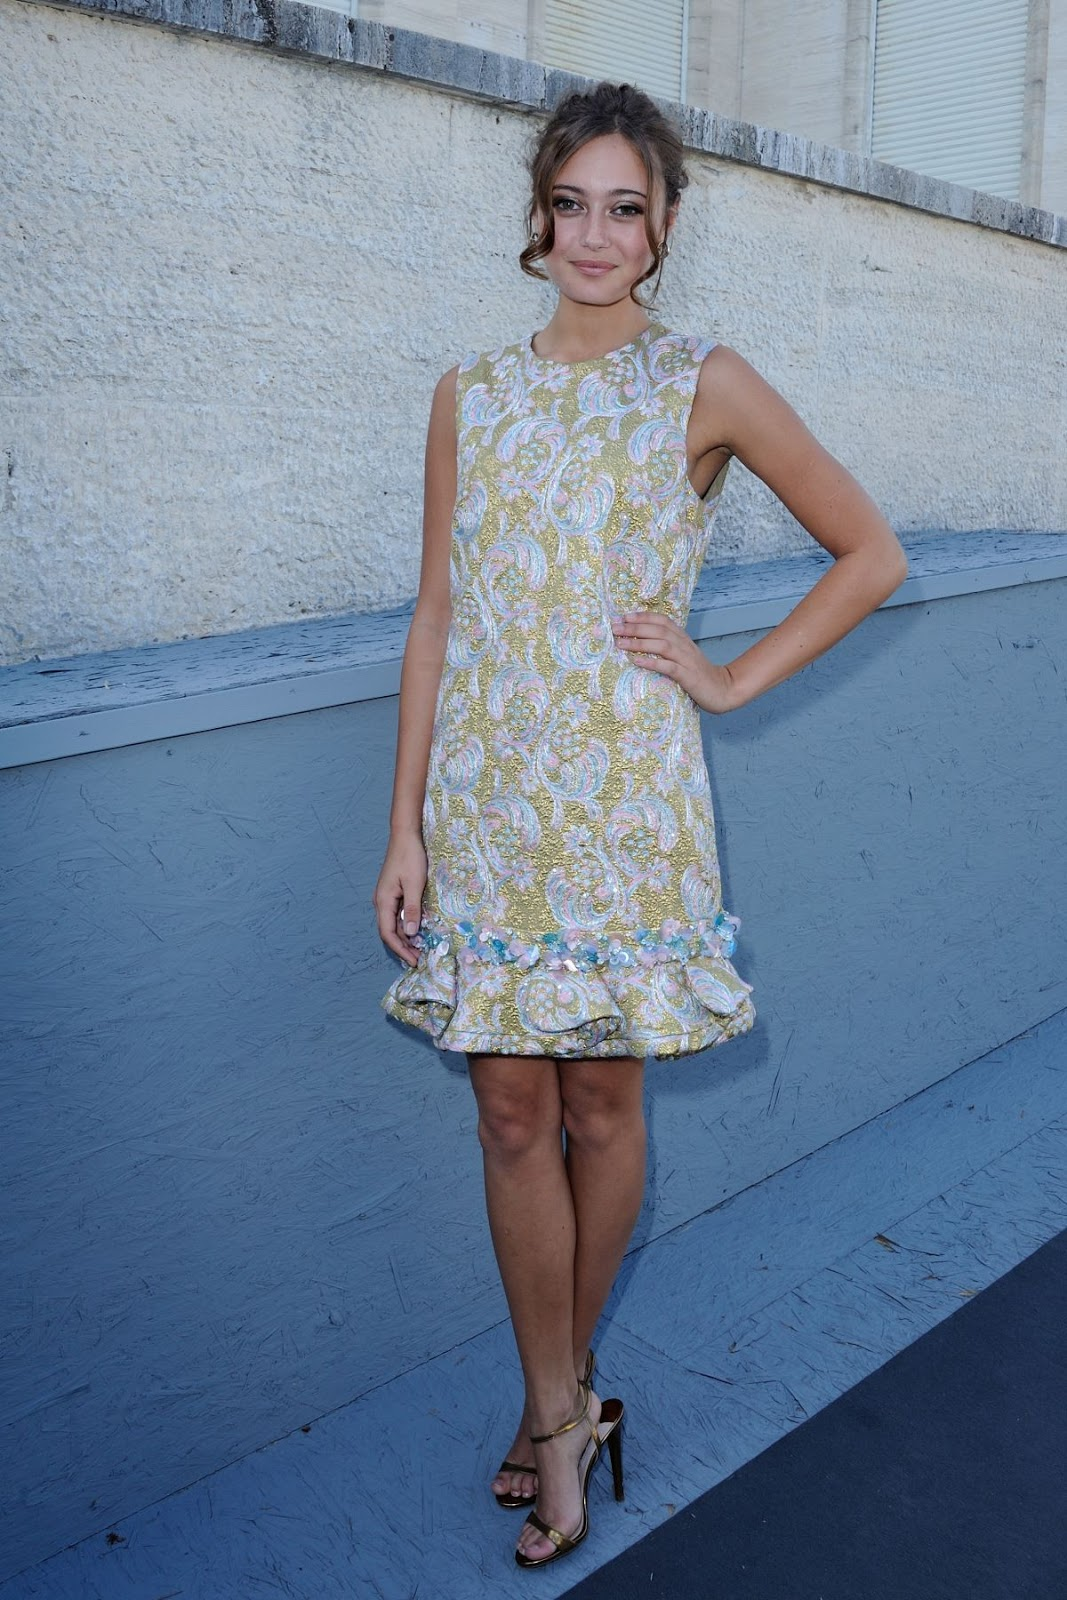 HQ Photos of Ella Purnell Photocall For Women's Tales During The 2016  73rd Venice Film Festival in Venice Italy